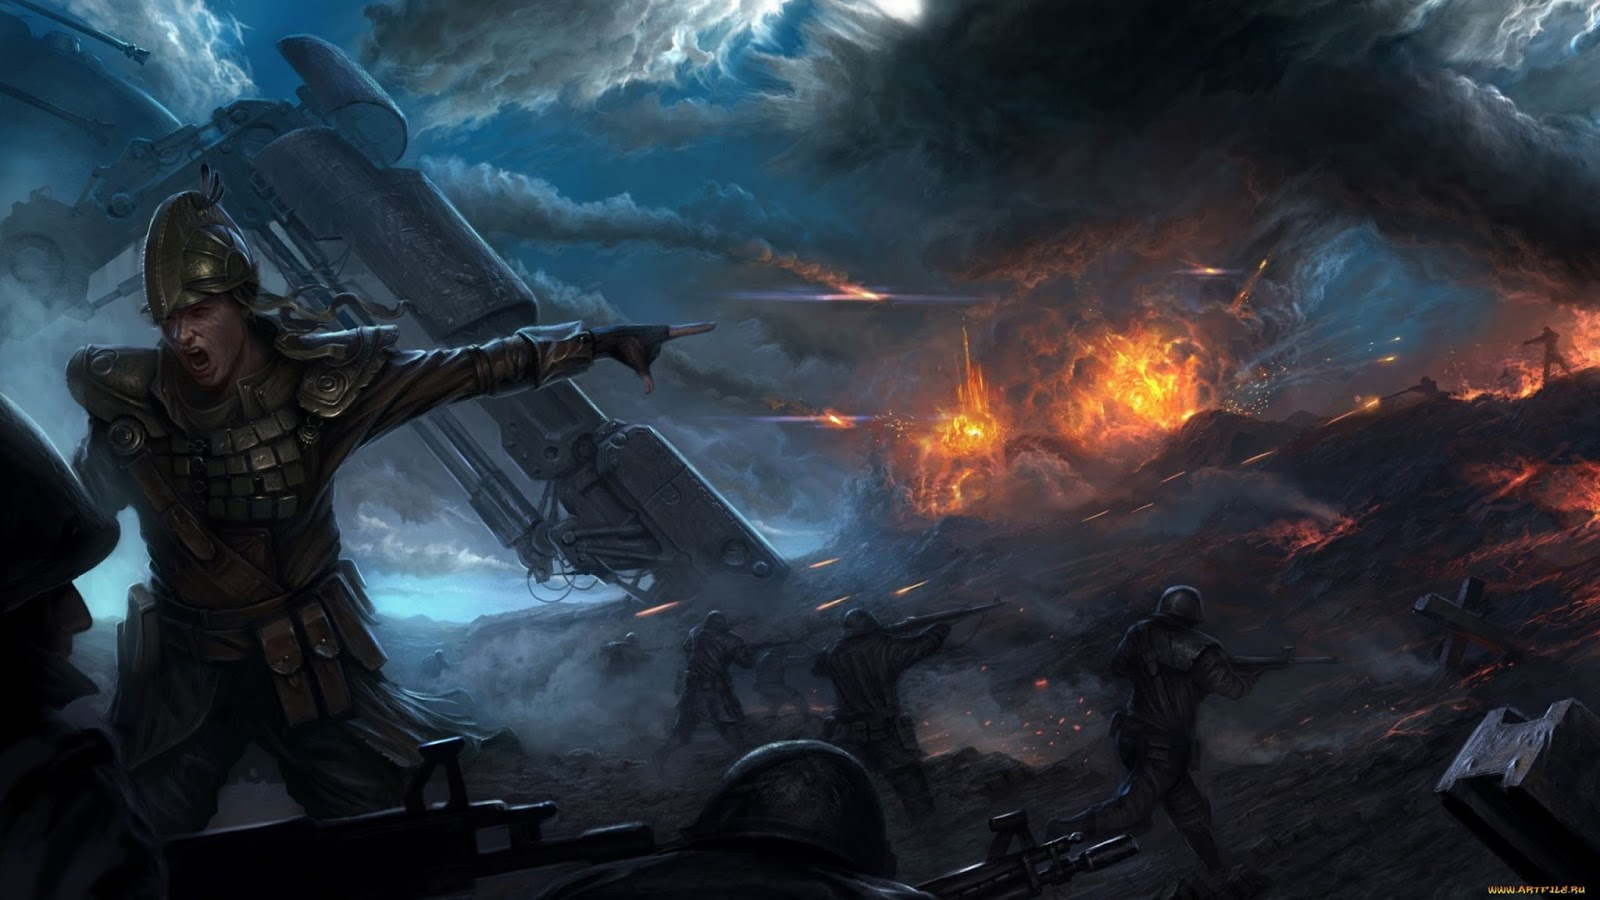 Cool War Backgrounds Battlefield war explosion army 1600x900